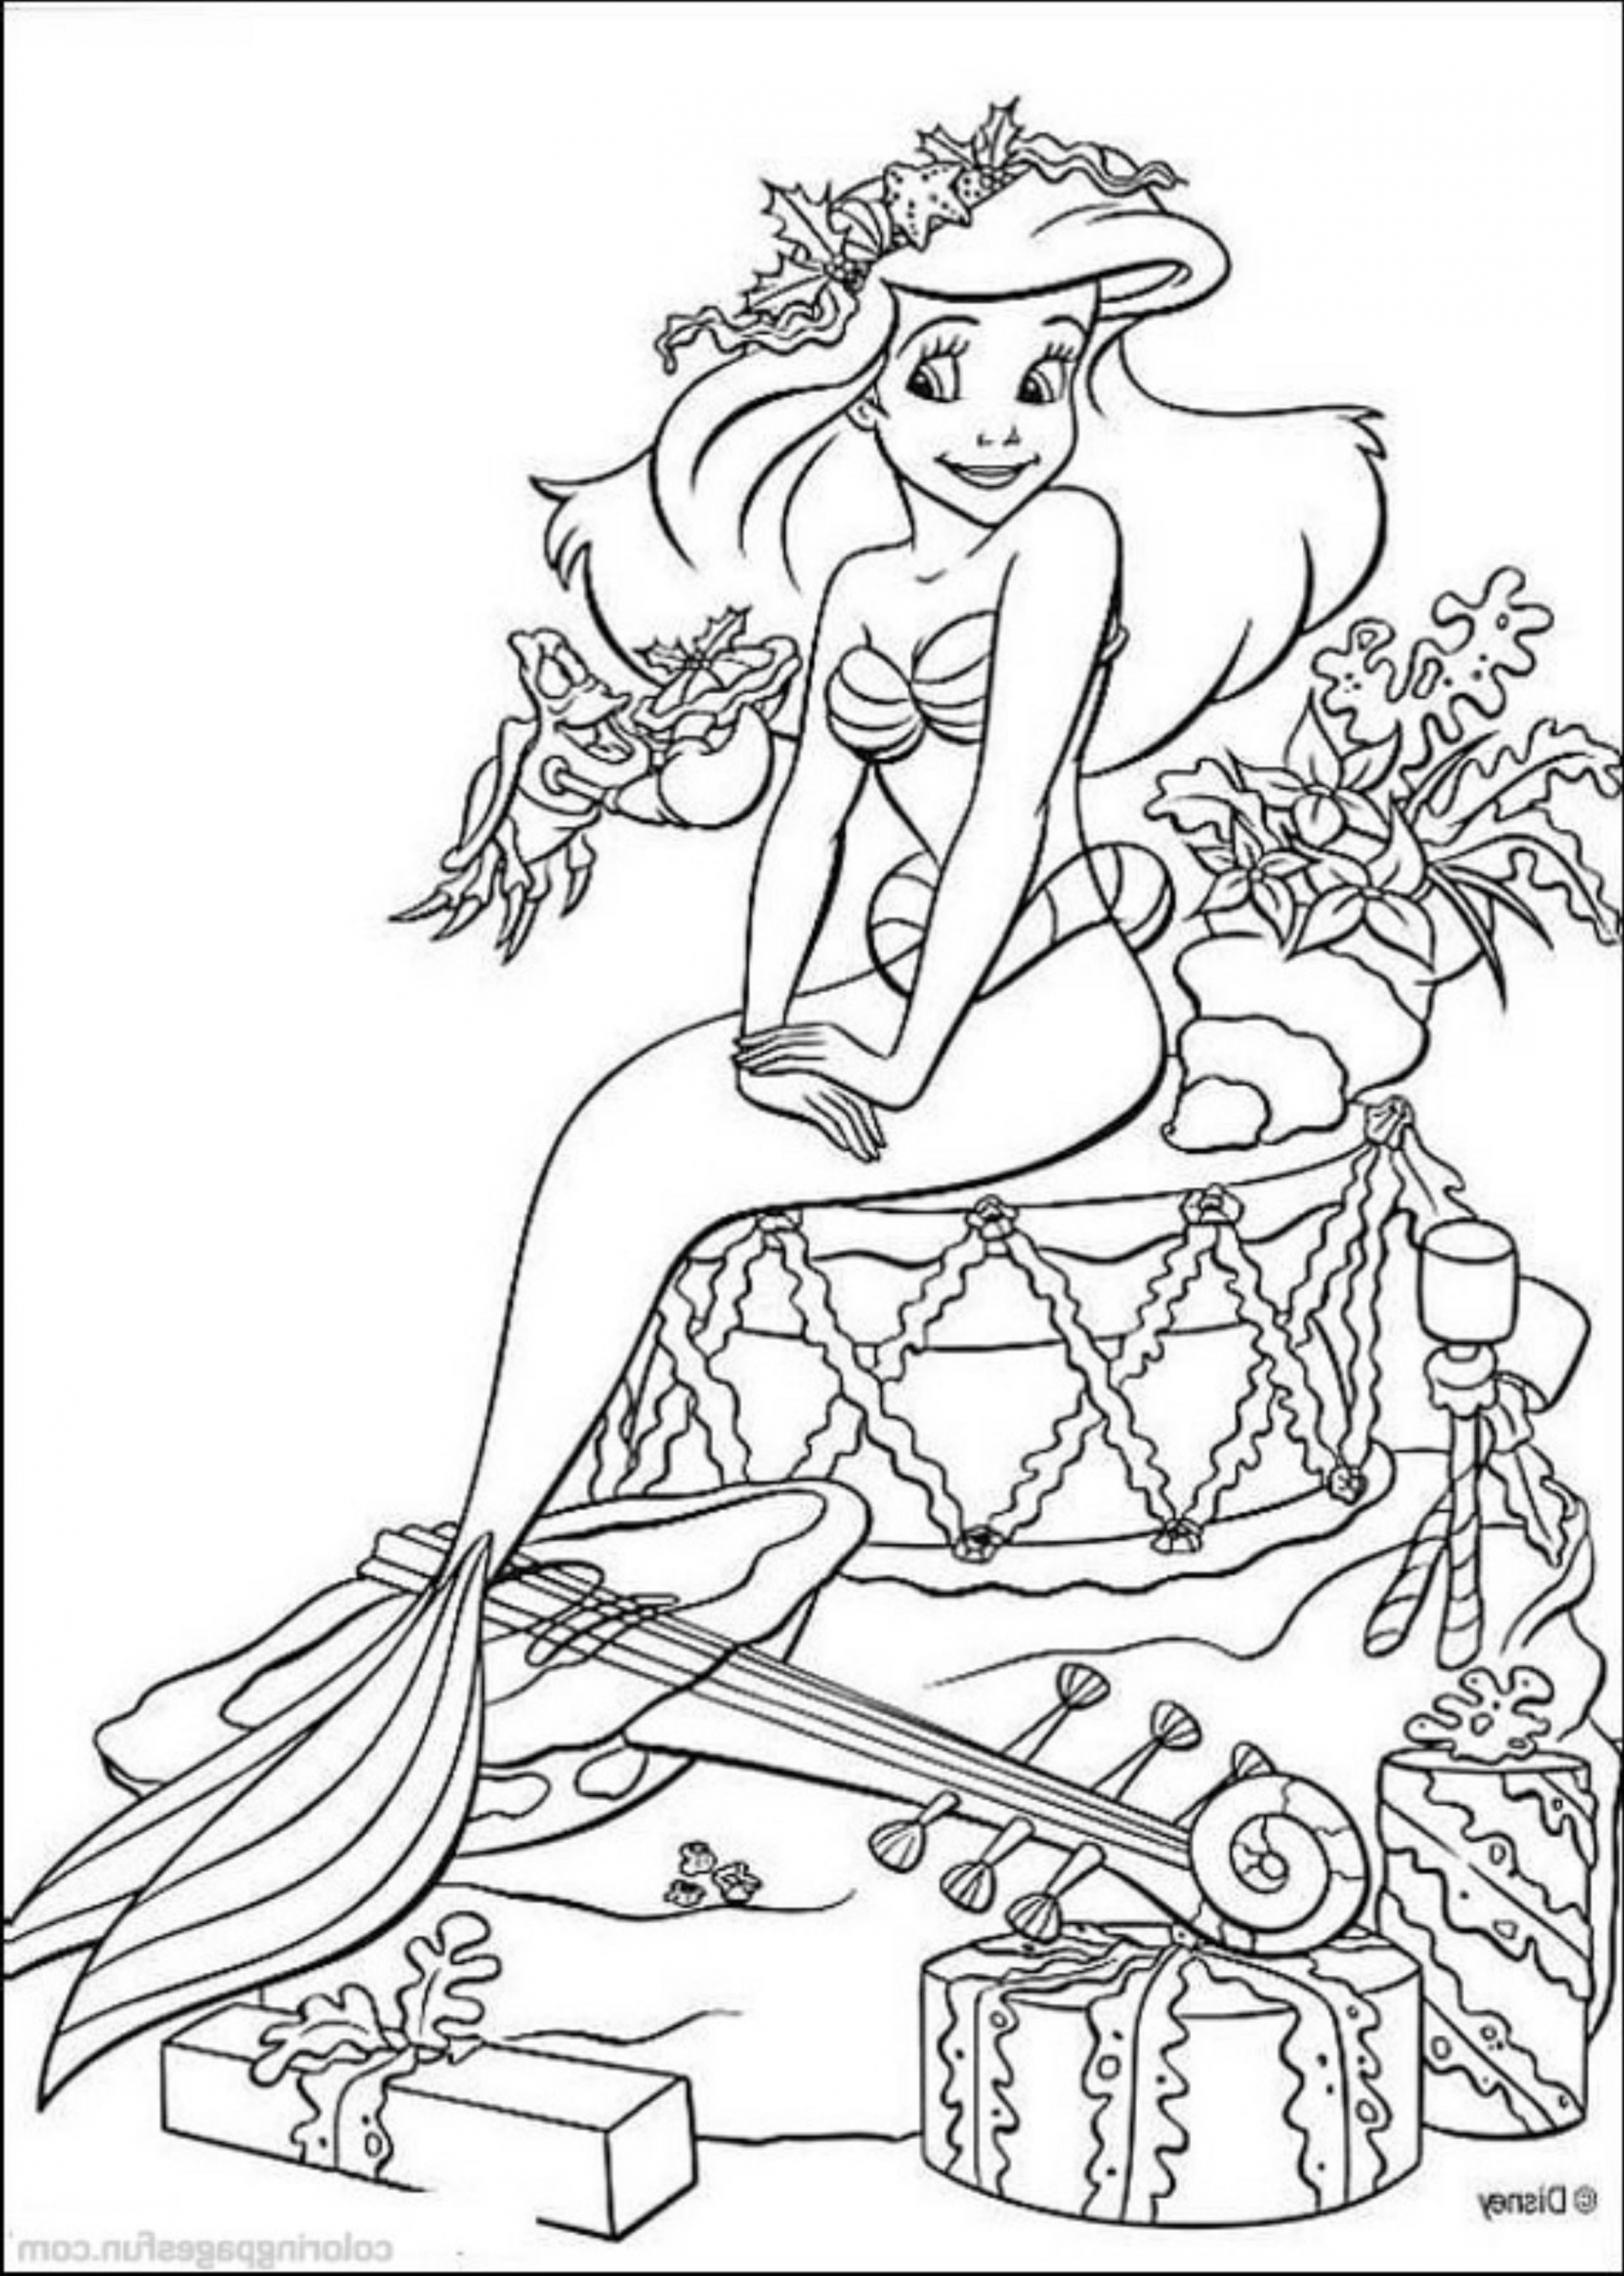 ariel and ursula coloring pages coloriages la petite sirène ariel et ursula ariel pages coloring and ursula